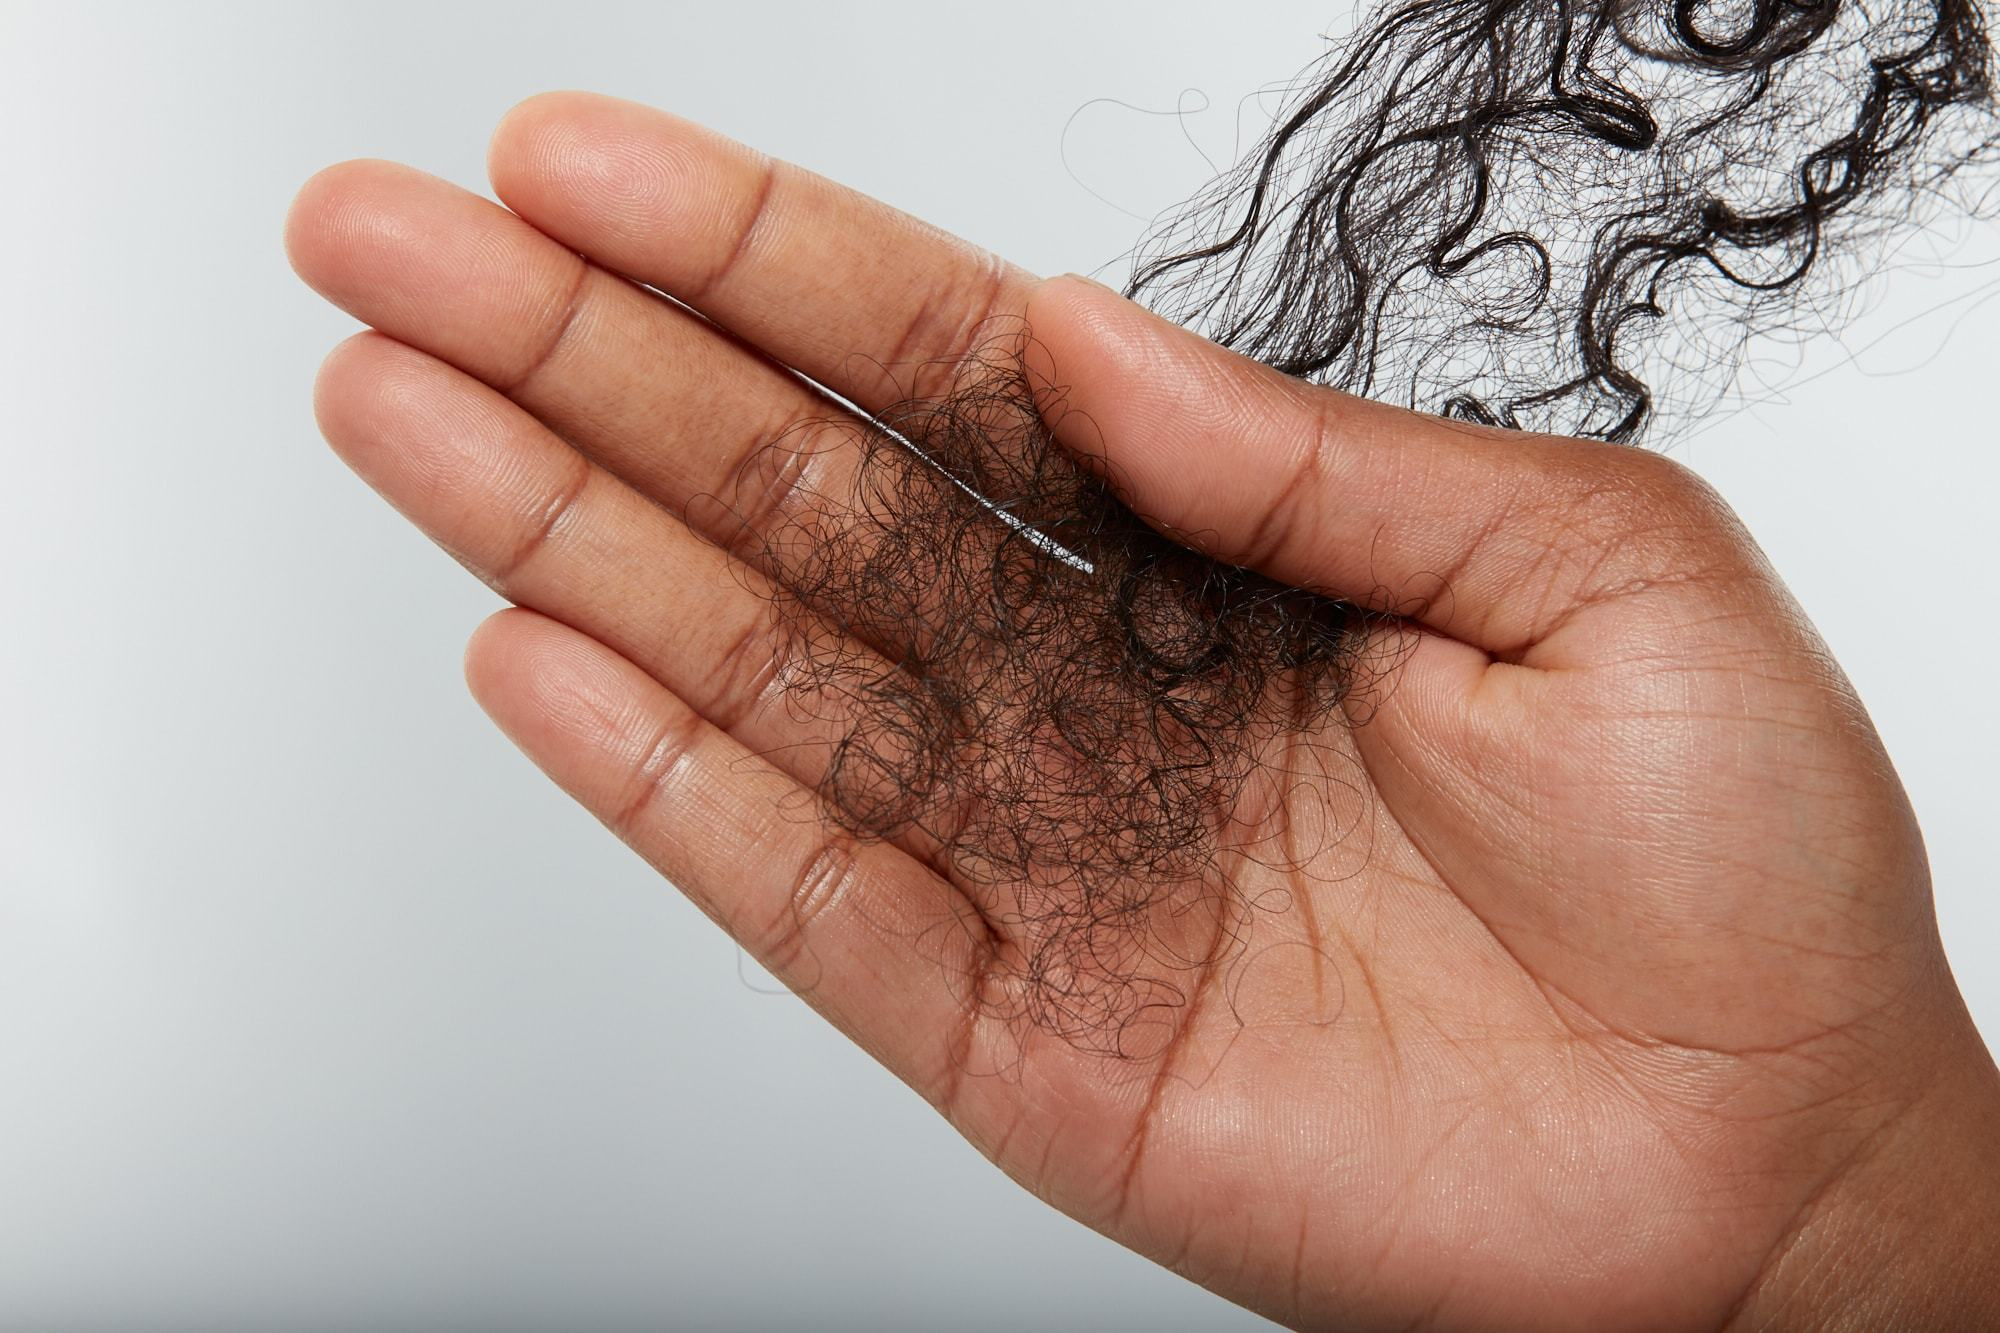 Close-up of a hand holding frizzy natural hair